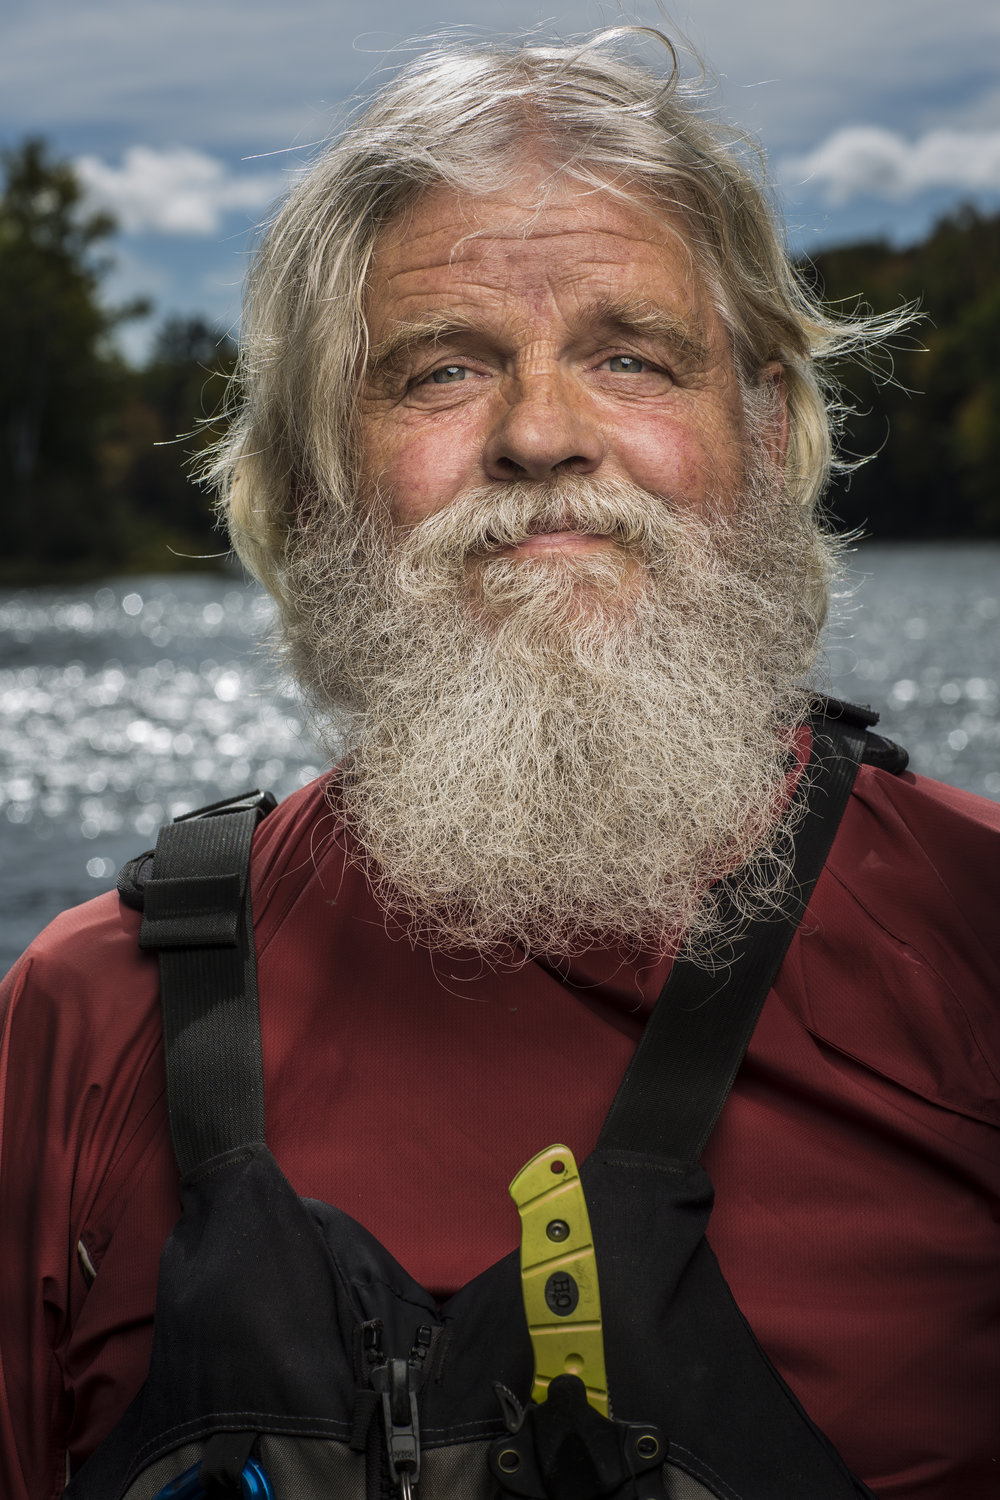 """The one and only Johnny Mac, photographed at Crusher Pool in The Forks, Maine. At the age of 65, this is Johnny's 34th consecutive season as a river guide. Normally a job associated with younger people, Johnny doesn't plan to stop anytime soon. """"I always said I'd do this until I wasn't having fun anymore."""" He sure seems like he's still having a good time on the river."""